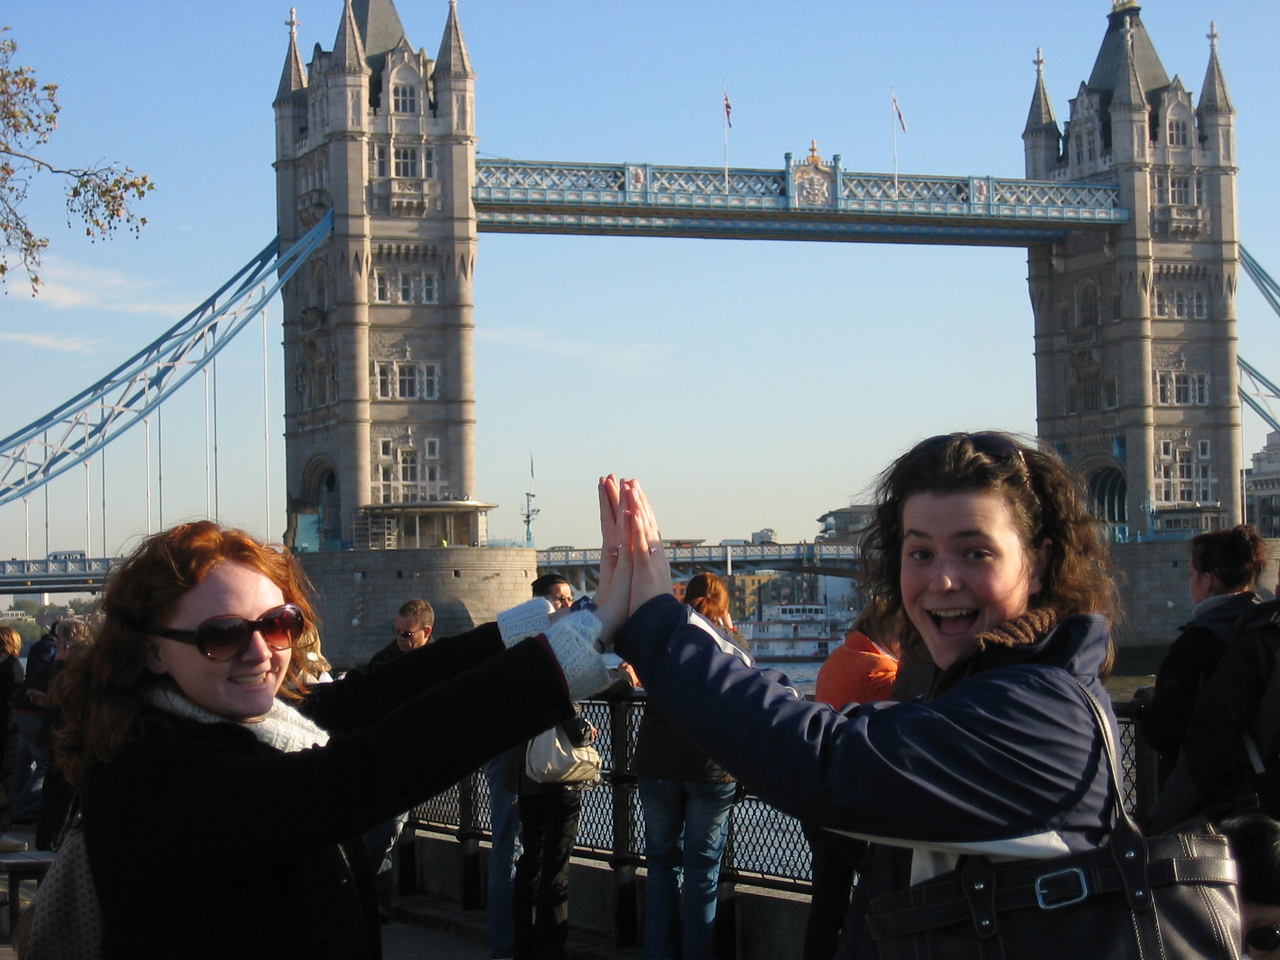 We thought this was London Bridge. Stupid tourists.